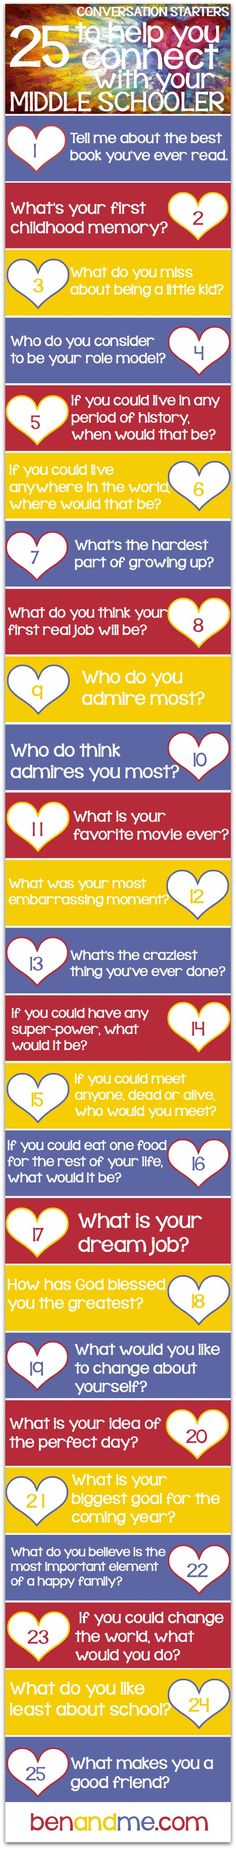 Do you ever struggle to have a good conversation with your teenager? Here are some creative questions you can use to help get the ball rolling. Thanks Marcy Crabtree for coming up with these great questions. http://benandme.com/2014/09/25-conversation-starters-help-connect-middle-schooler.html